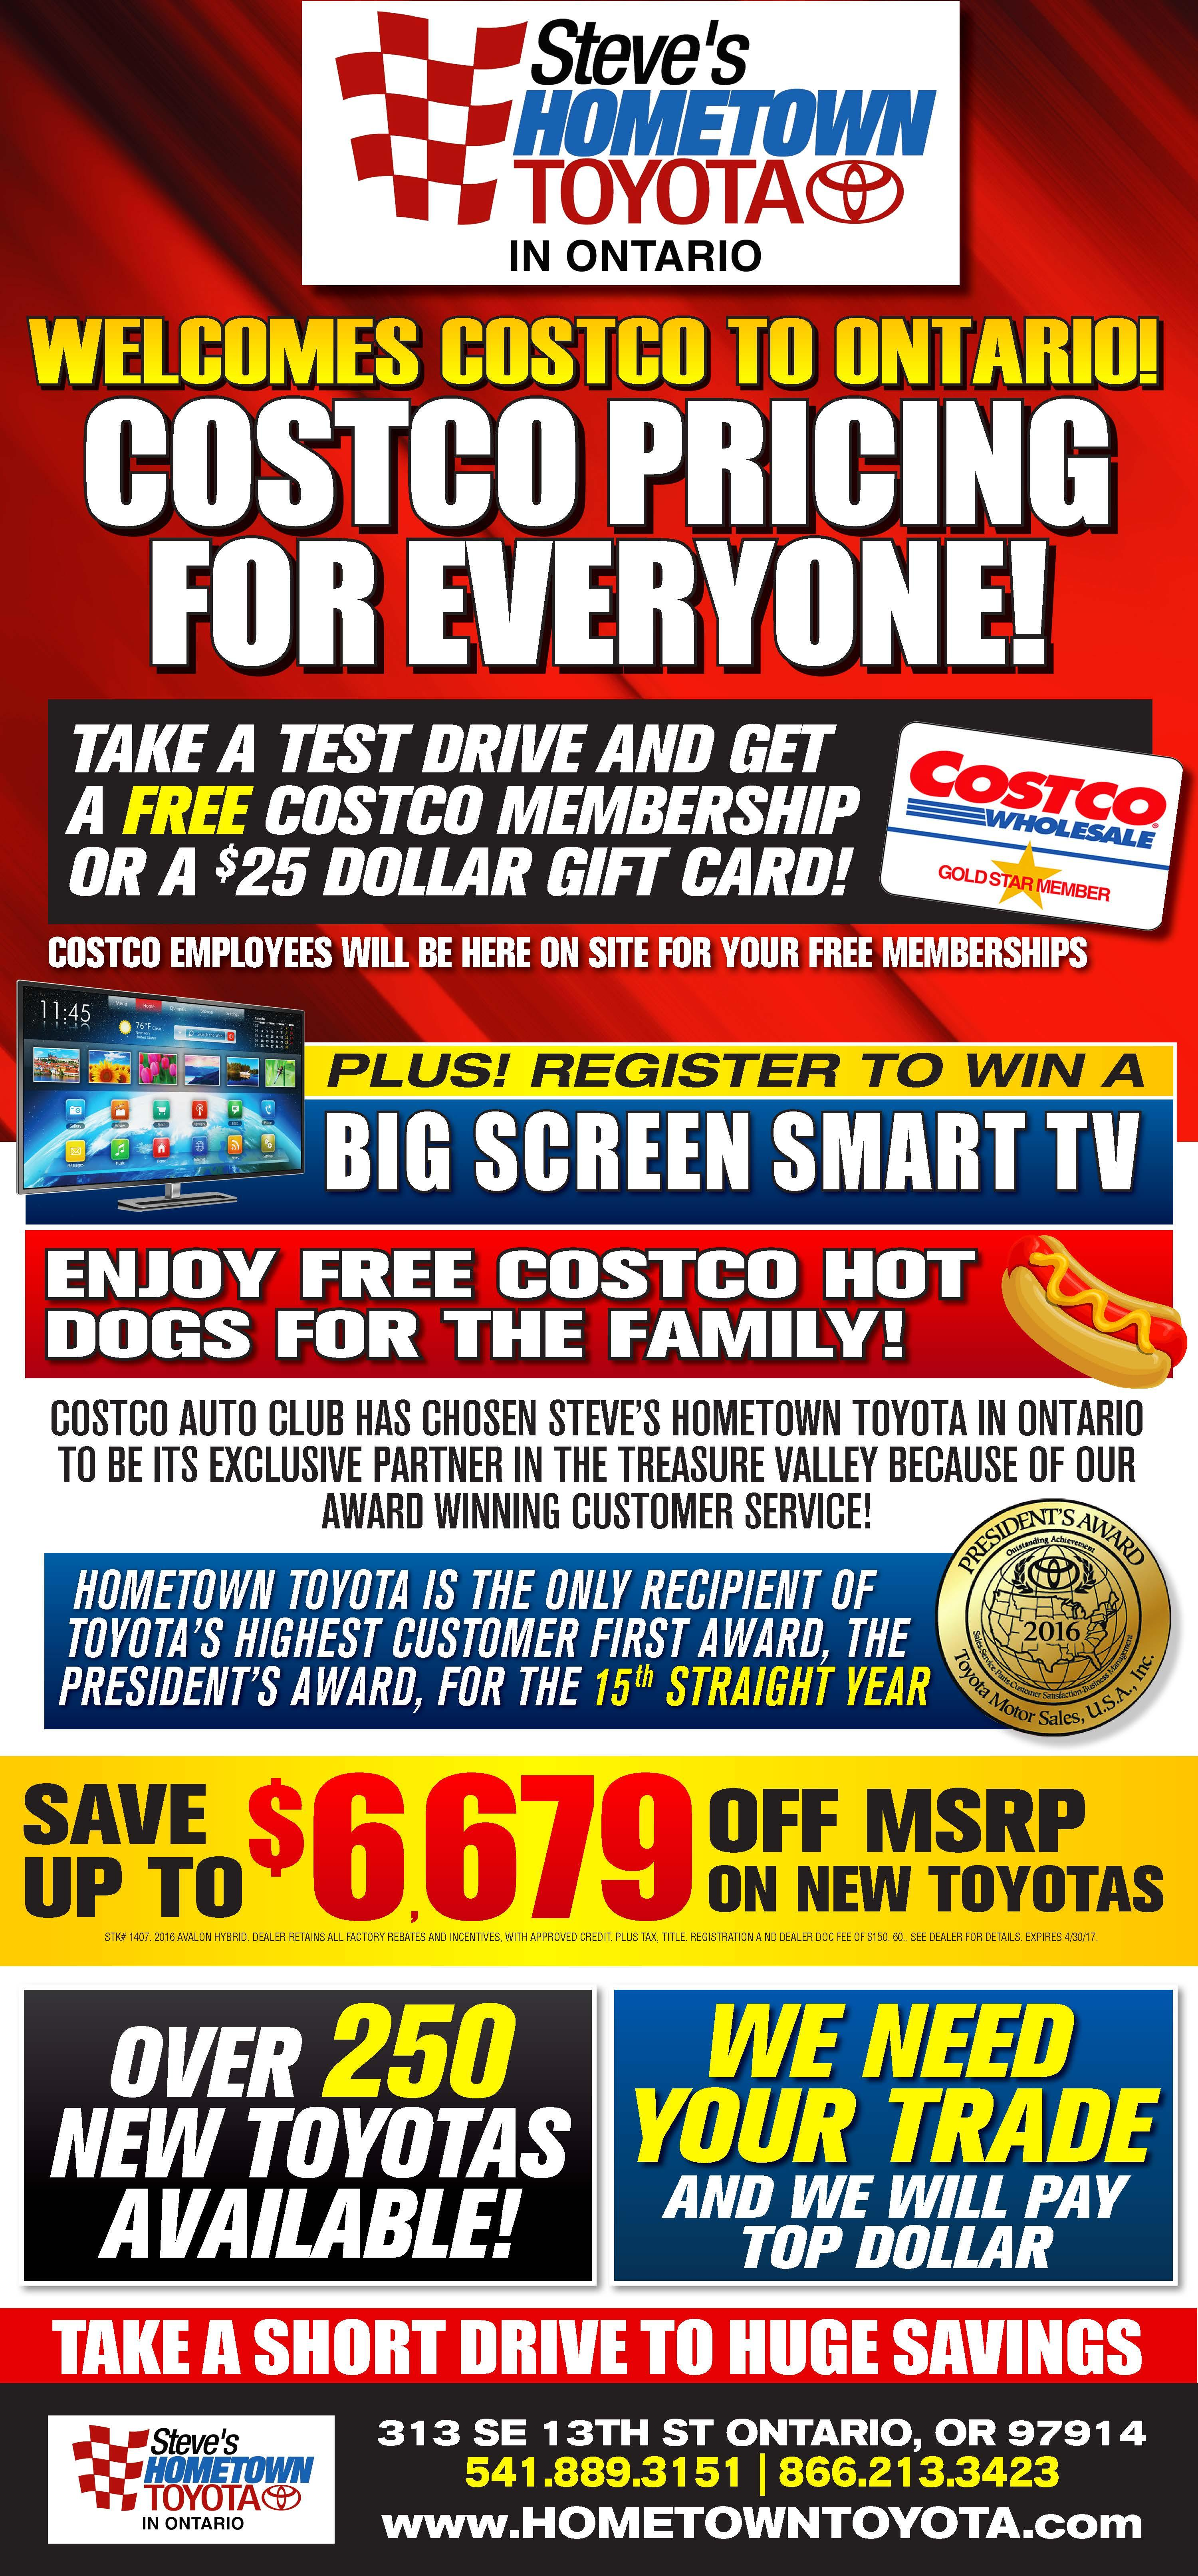 Costco Pricing For Everyone